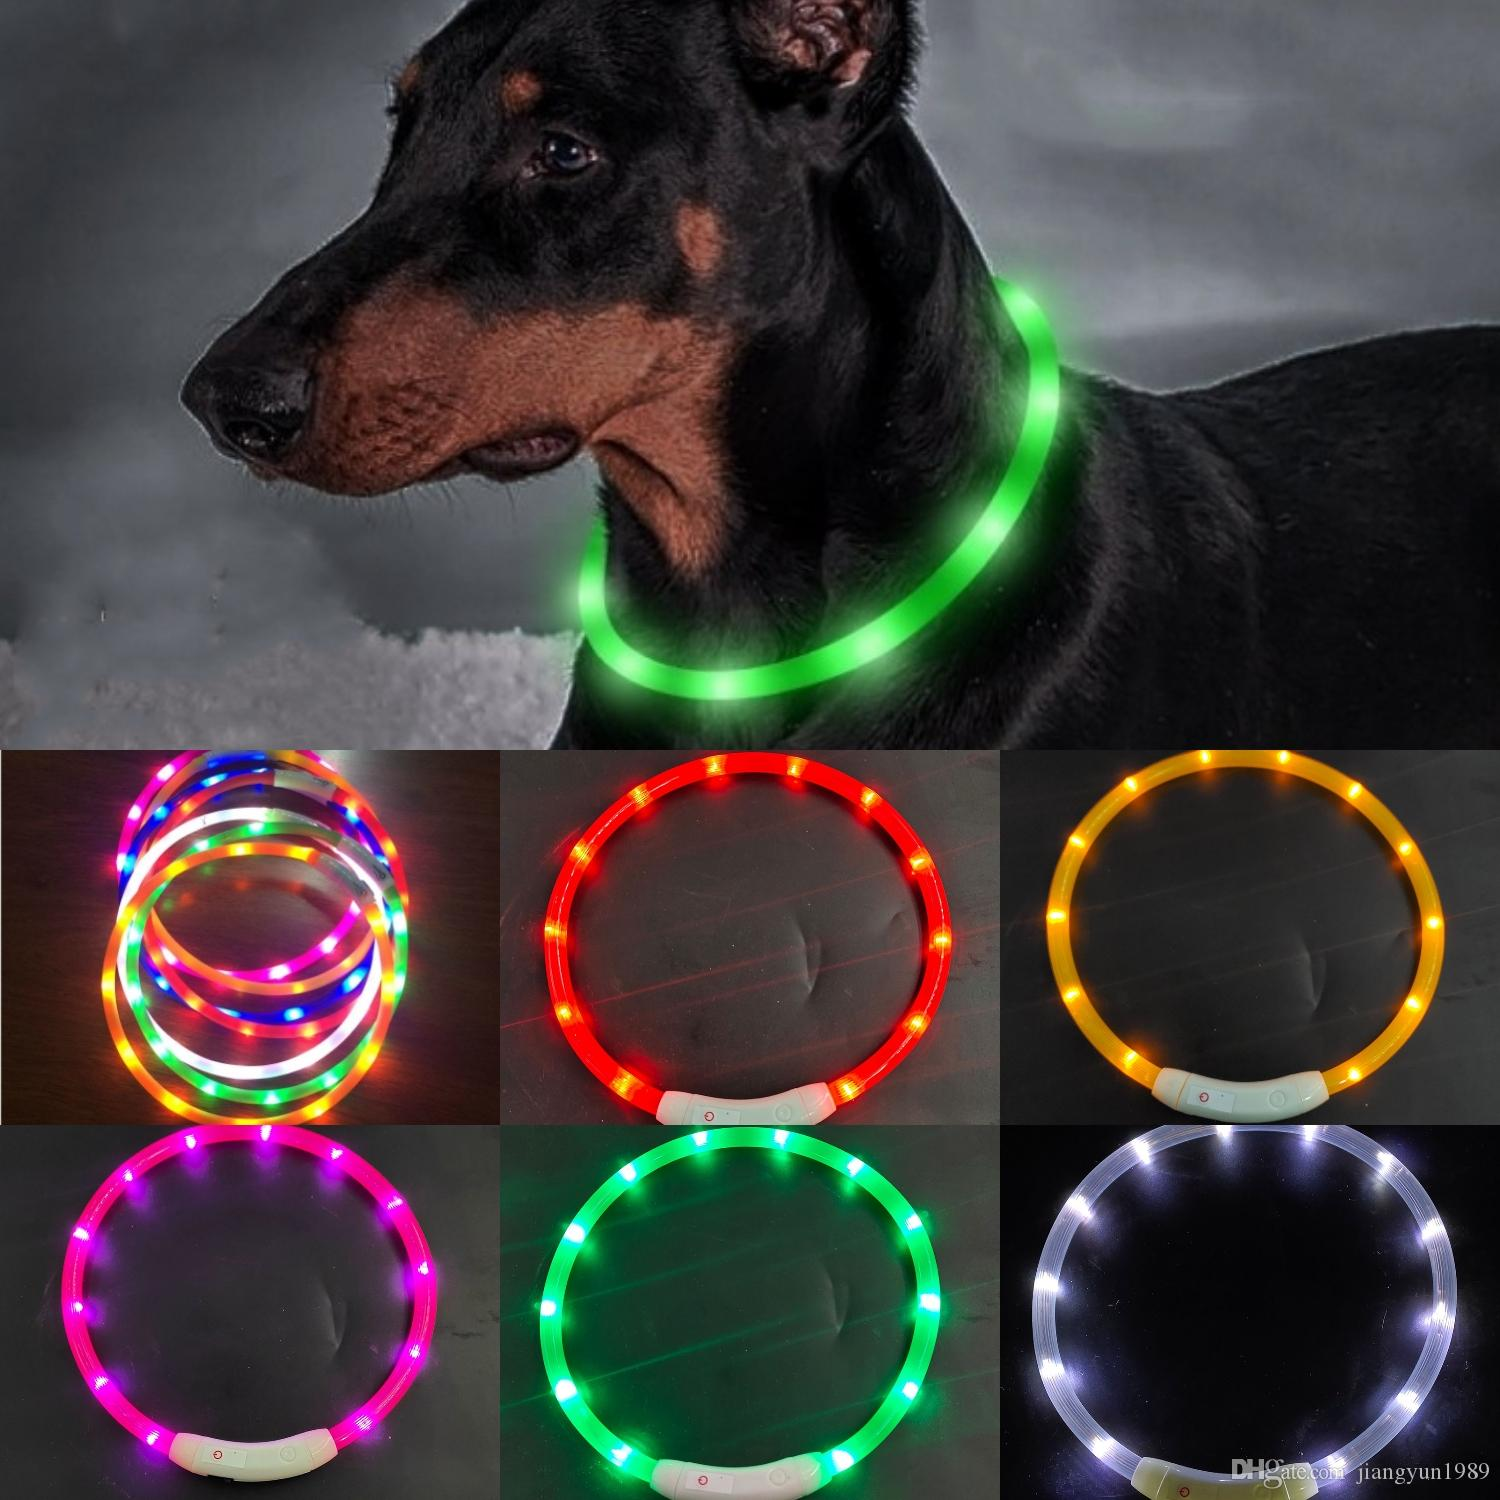 Cut USB Charge Dog Training Collar LED Outdoor Luminous charger Pet Dog Collars light Adjustable LED flashing dog collar Gift Box Packing